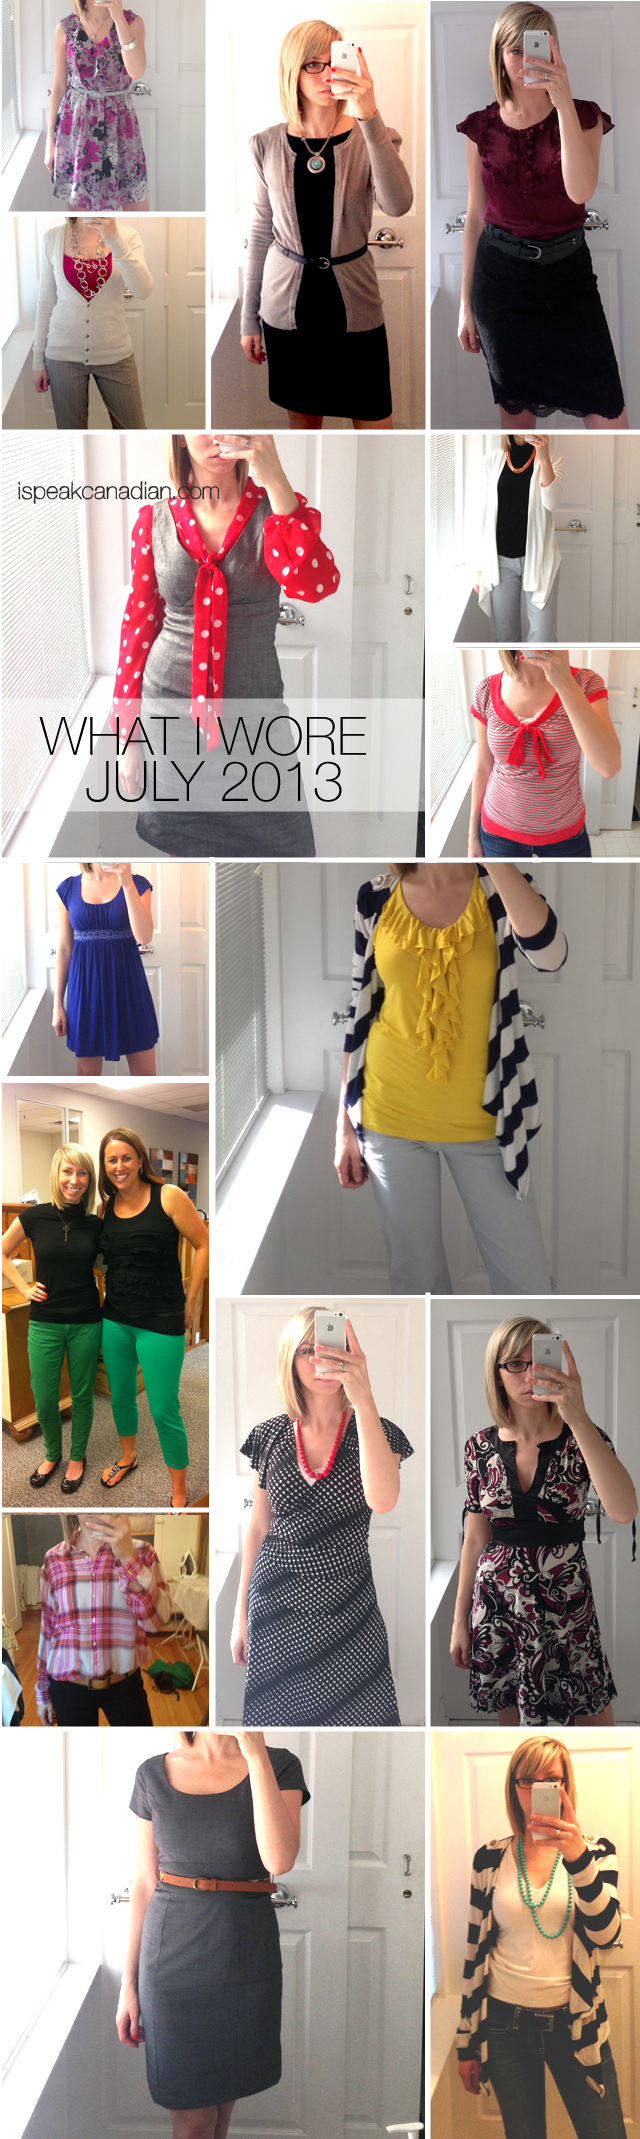 WhatIWore_July